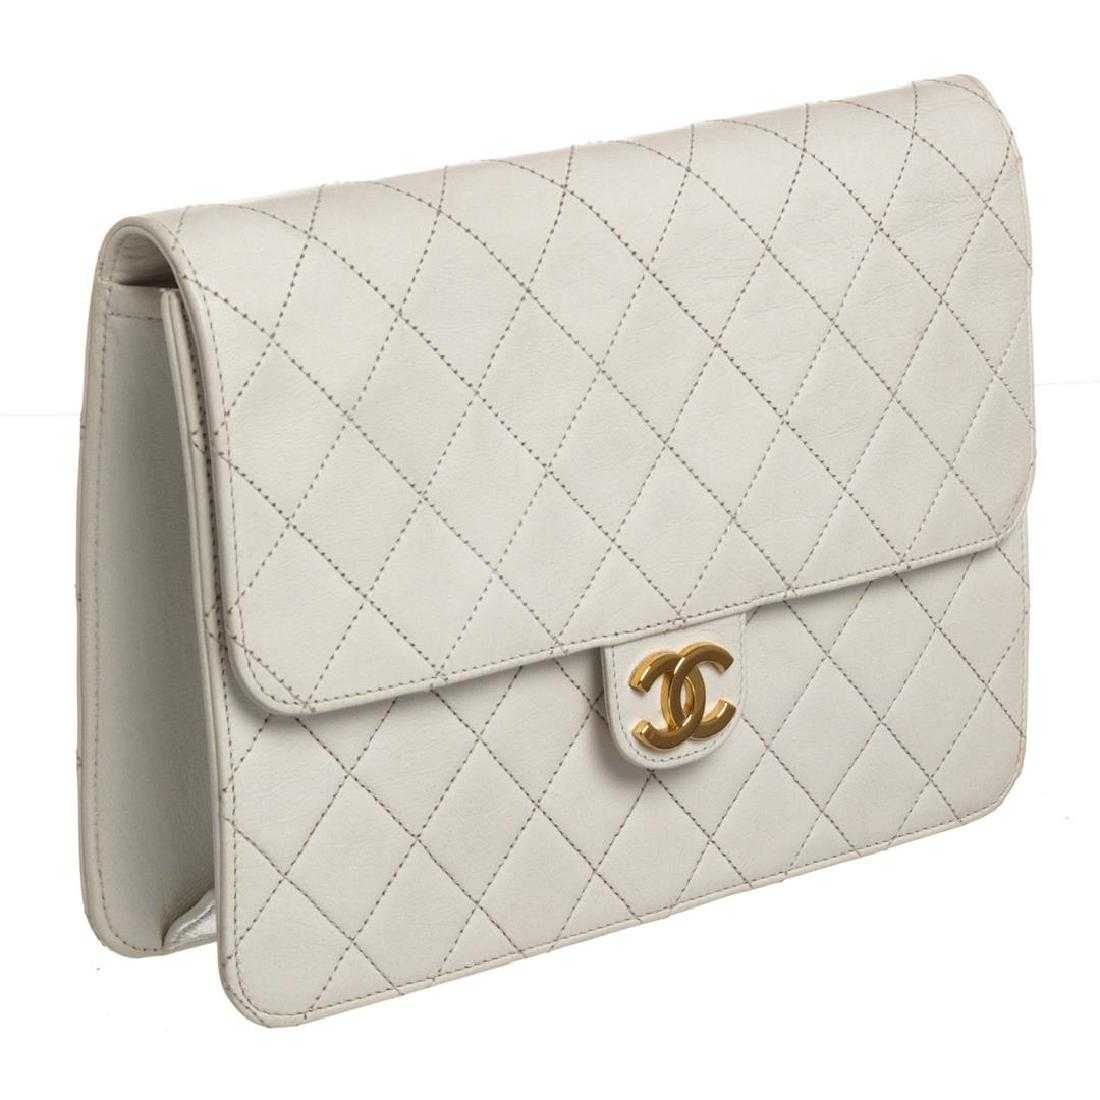 ee02a3629c437a Chanel Vintage White Quilted Lambskin Leather Single